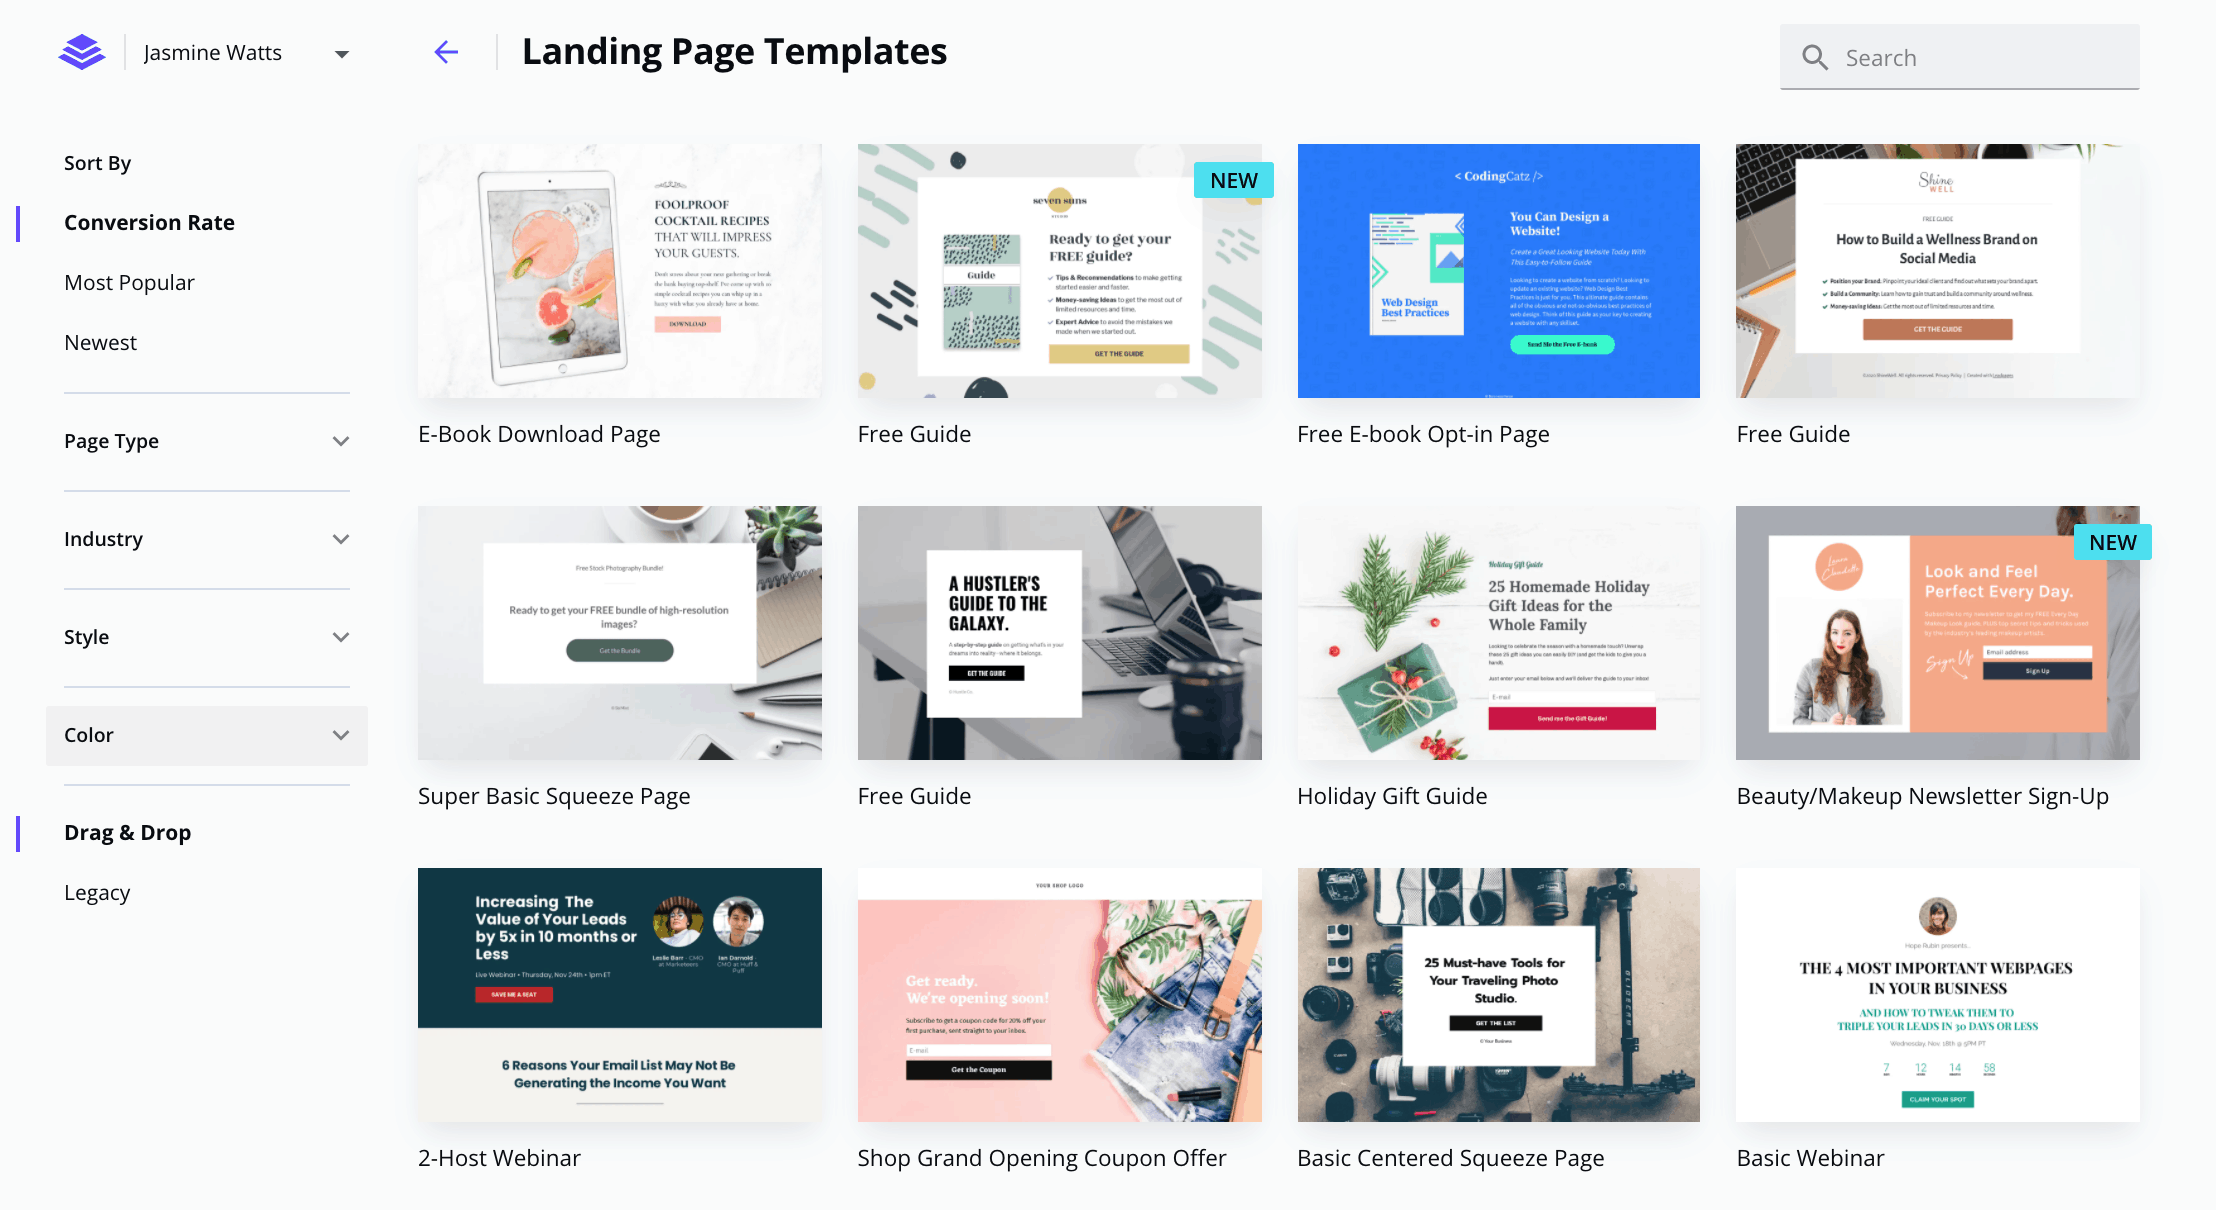 Leadpages landing page templates - ConvertKit vs LeadPages